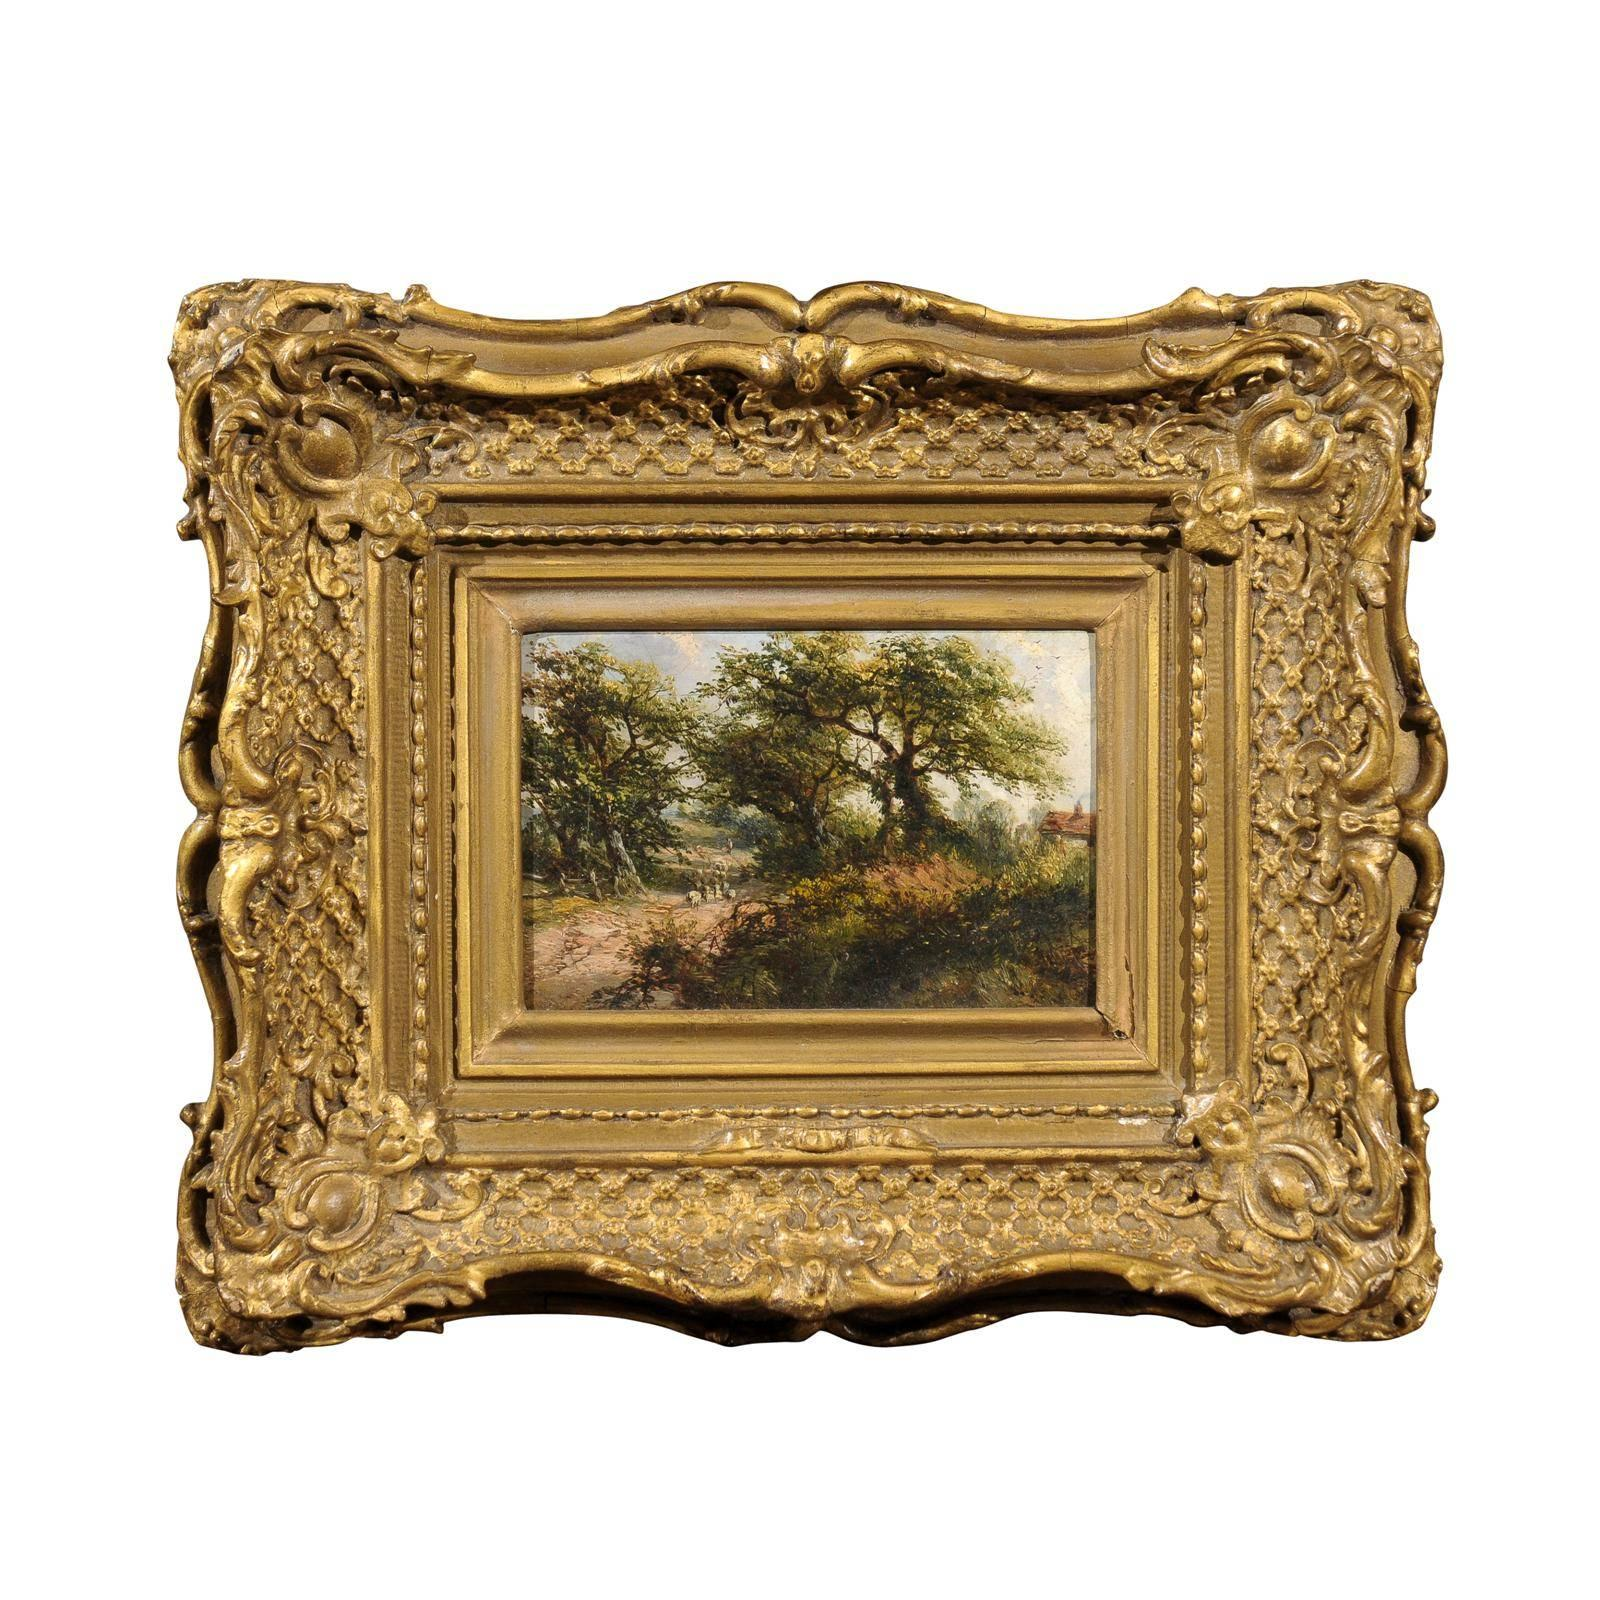 Gilt Framed 19th Century Oil on Canvas Landscape Painting, English